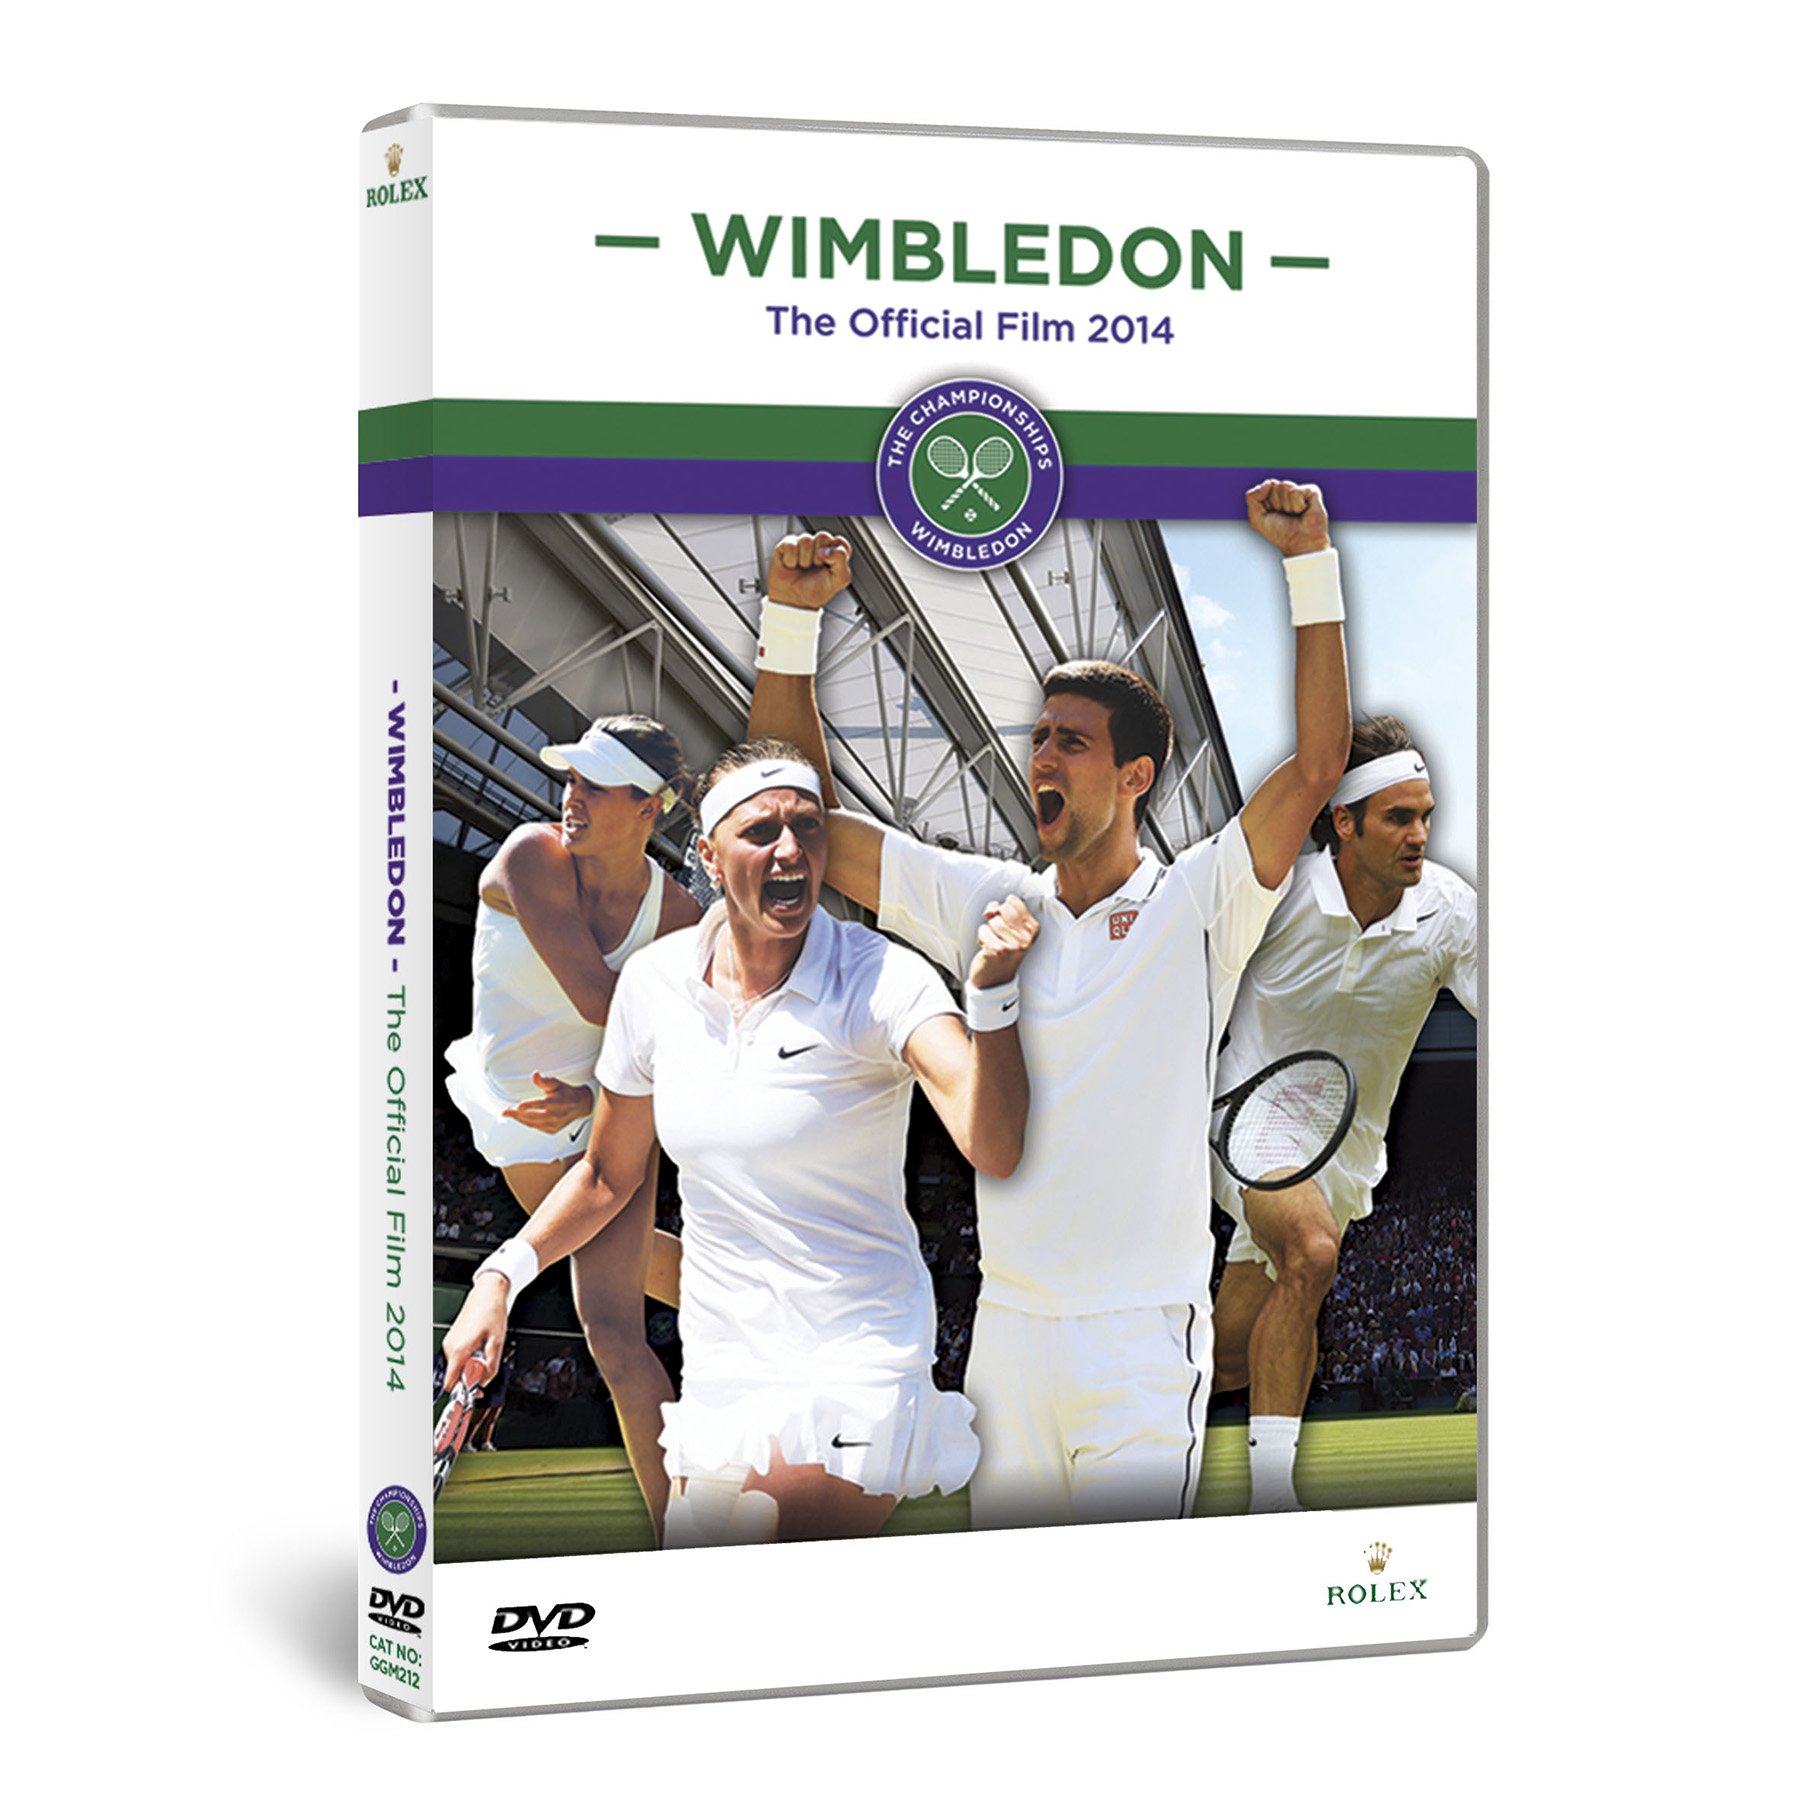 Wimbledon The Official Film 2014 DVD